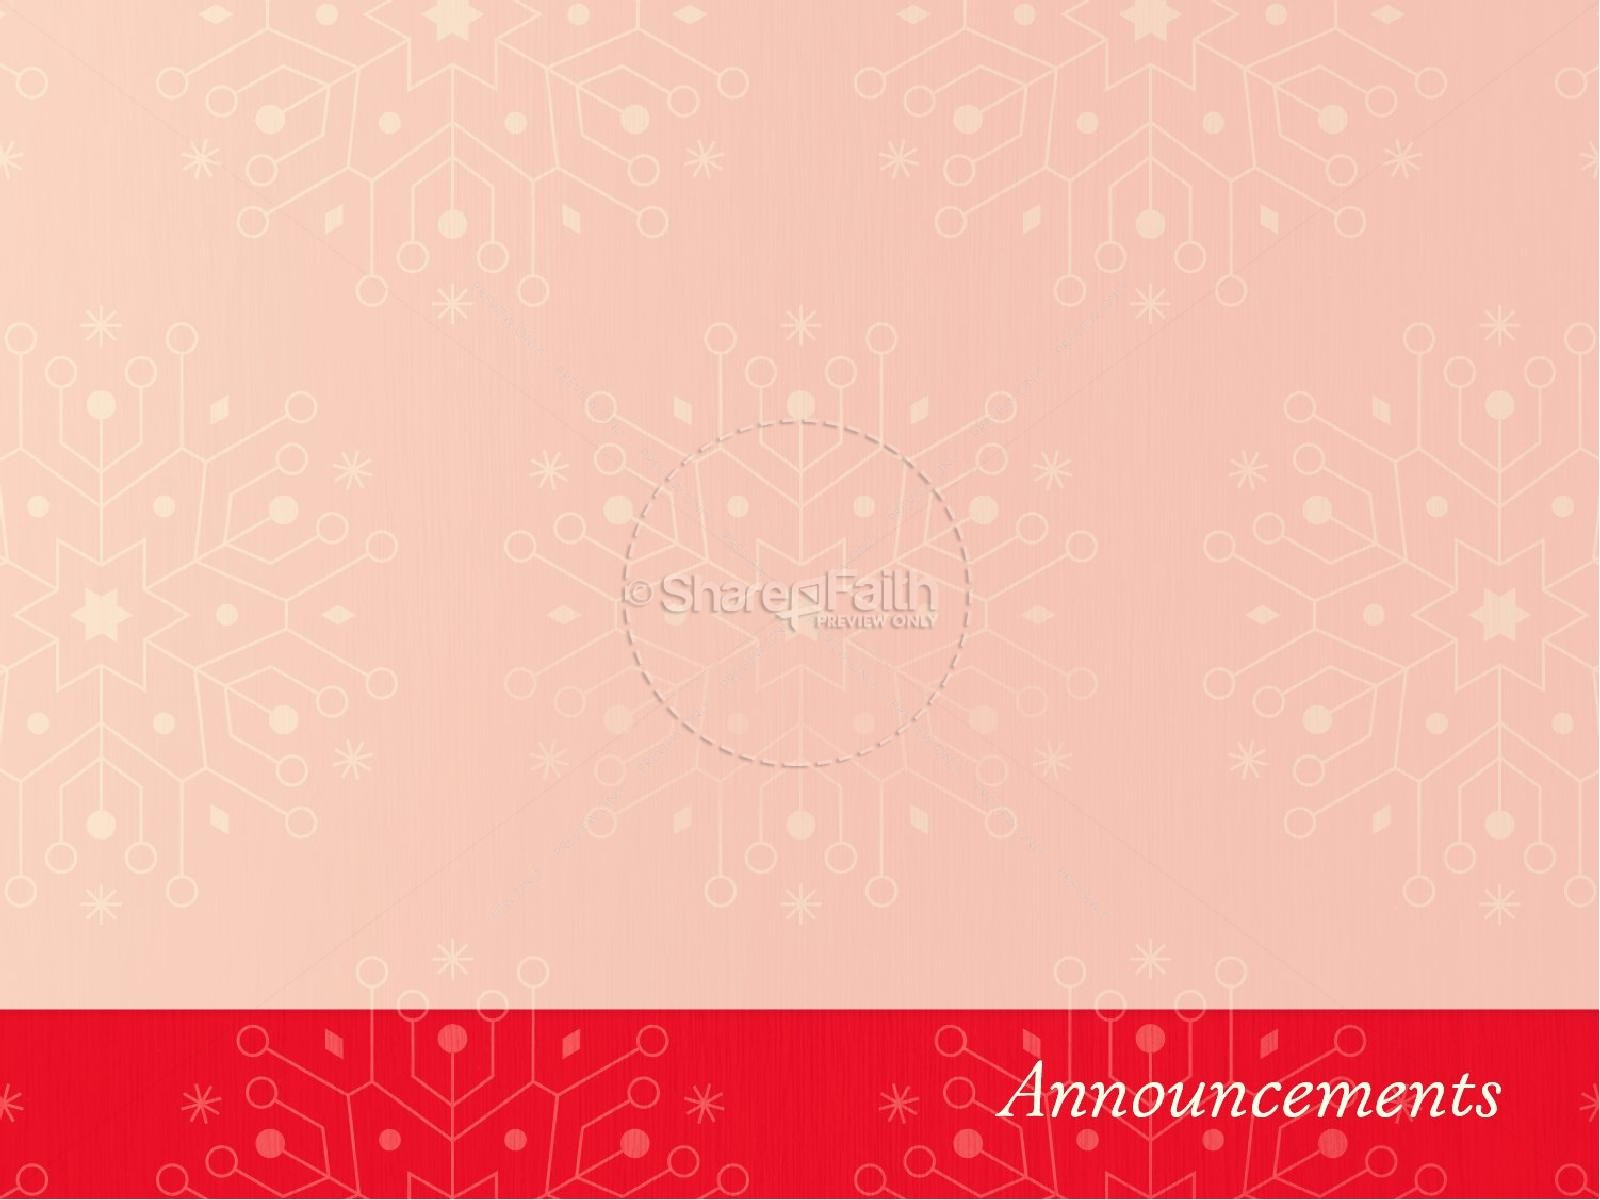 Snowflake Christmas Invitation Ministry PowerPoint